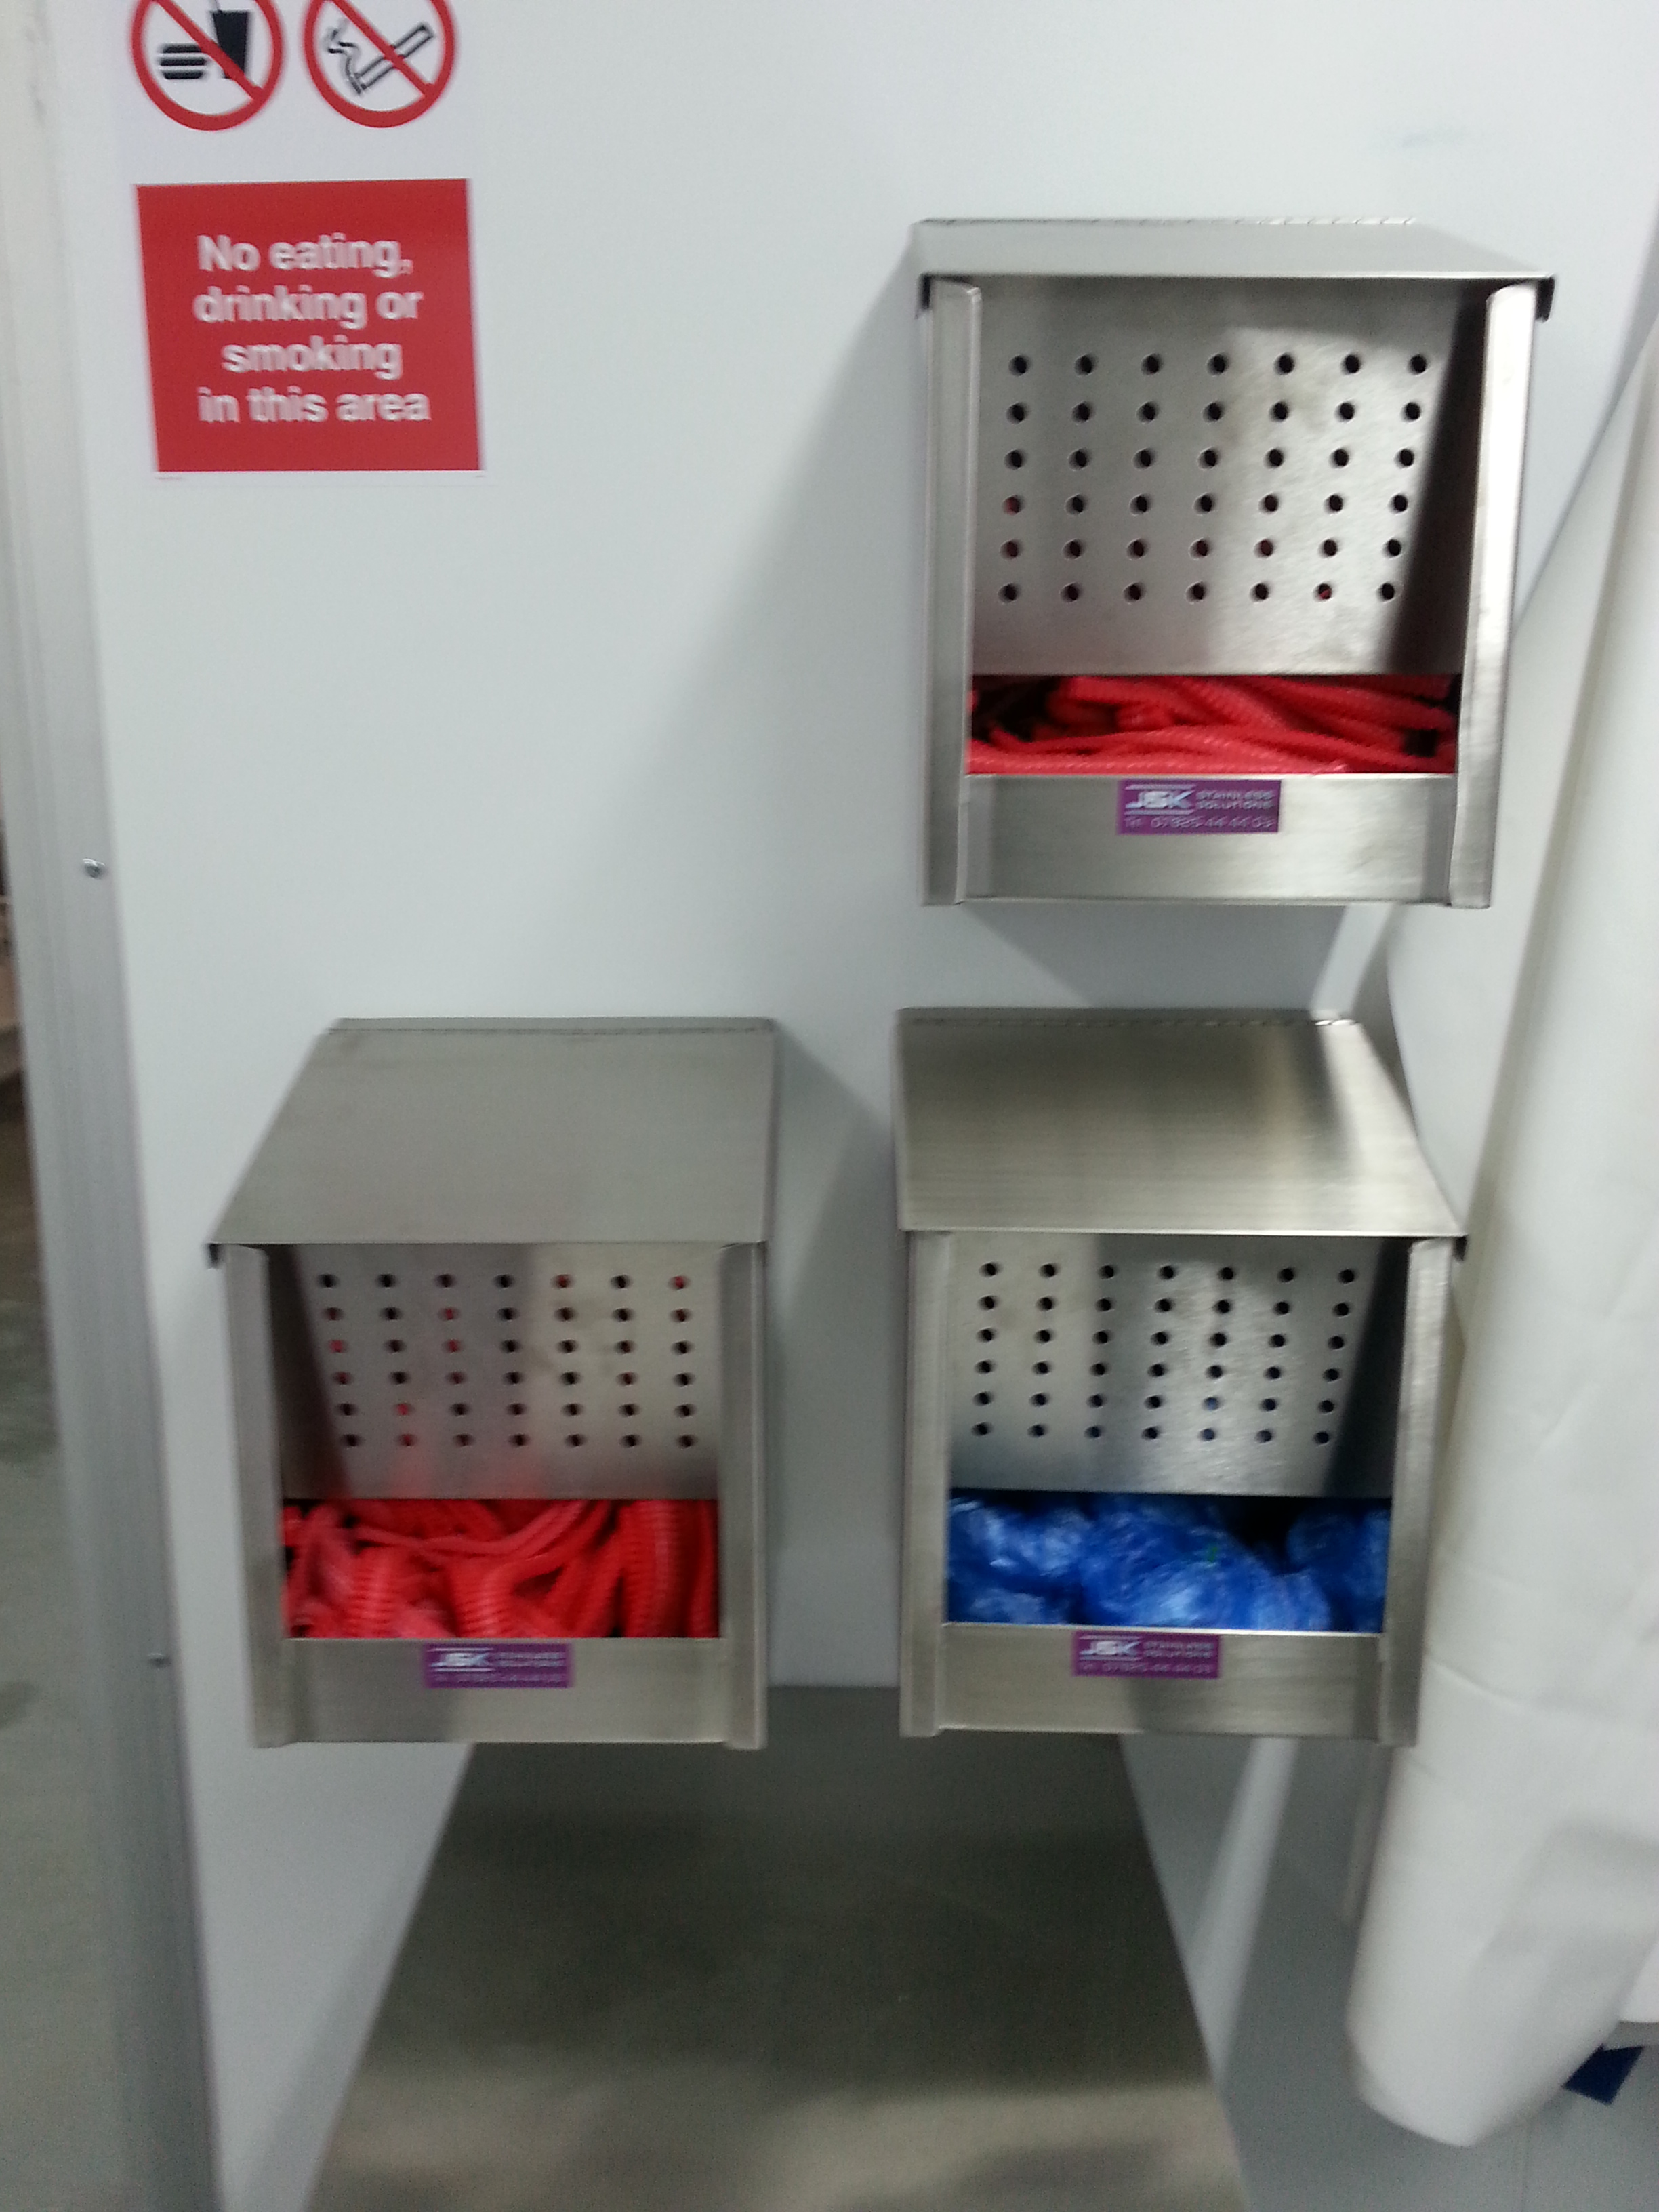 Stainless Steel Multi Dispensers By J Amp K Stainless